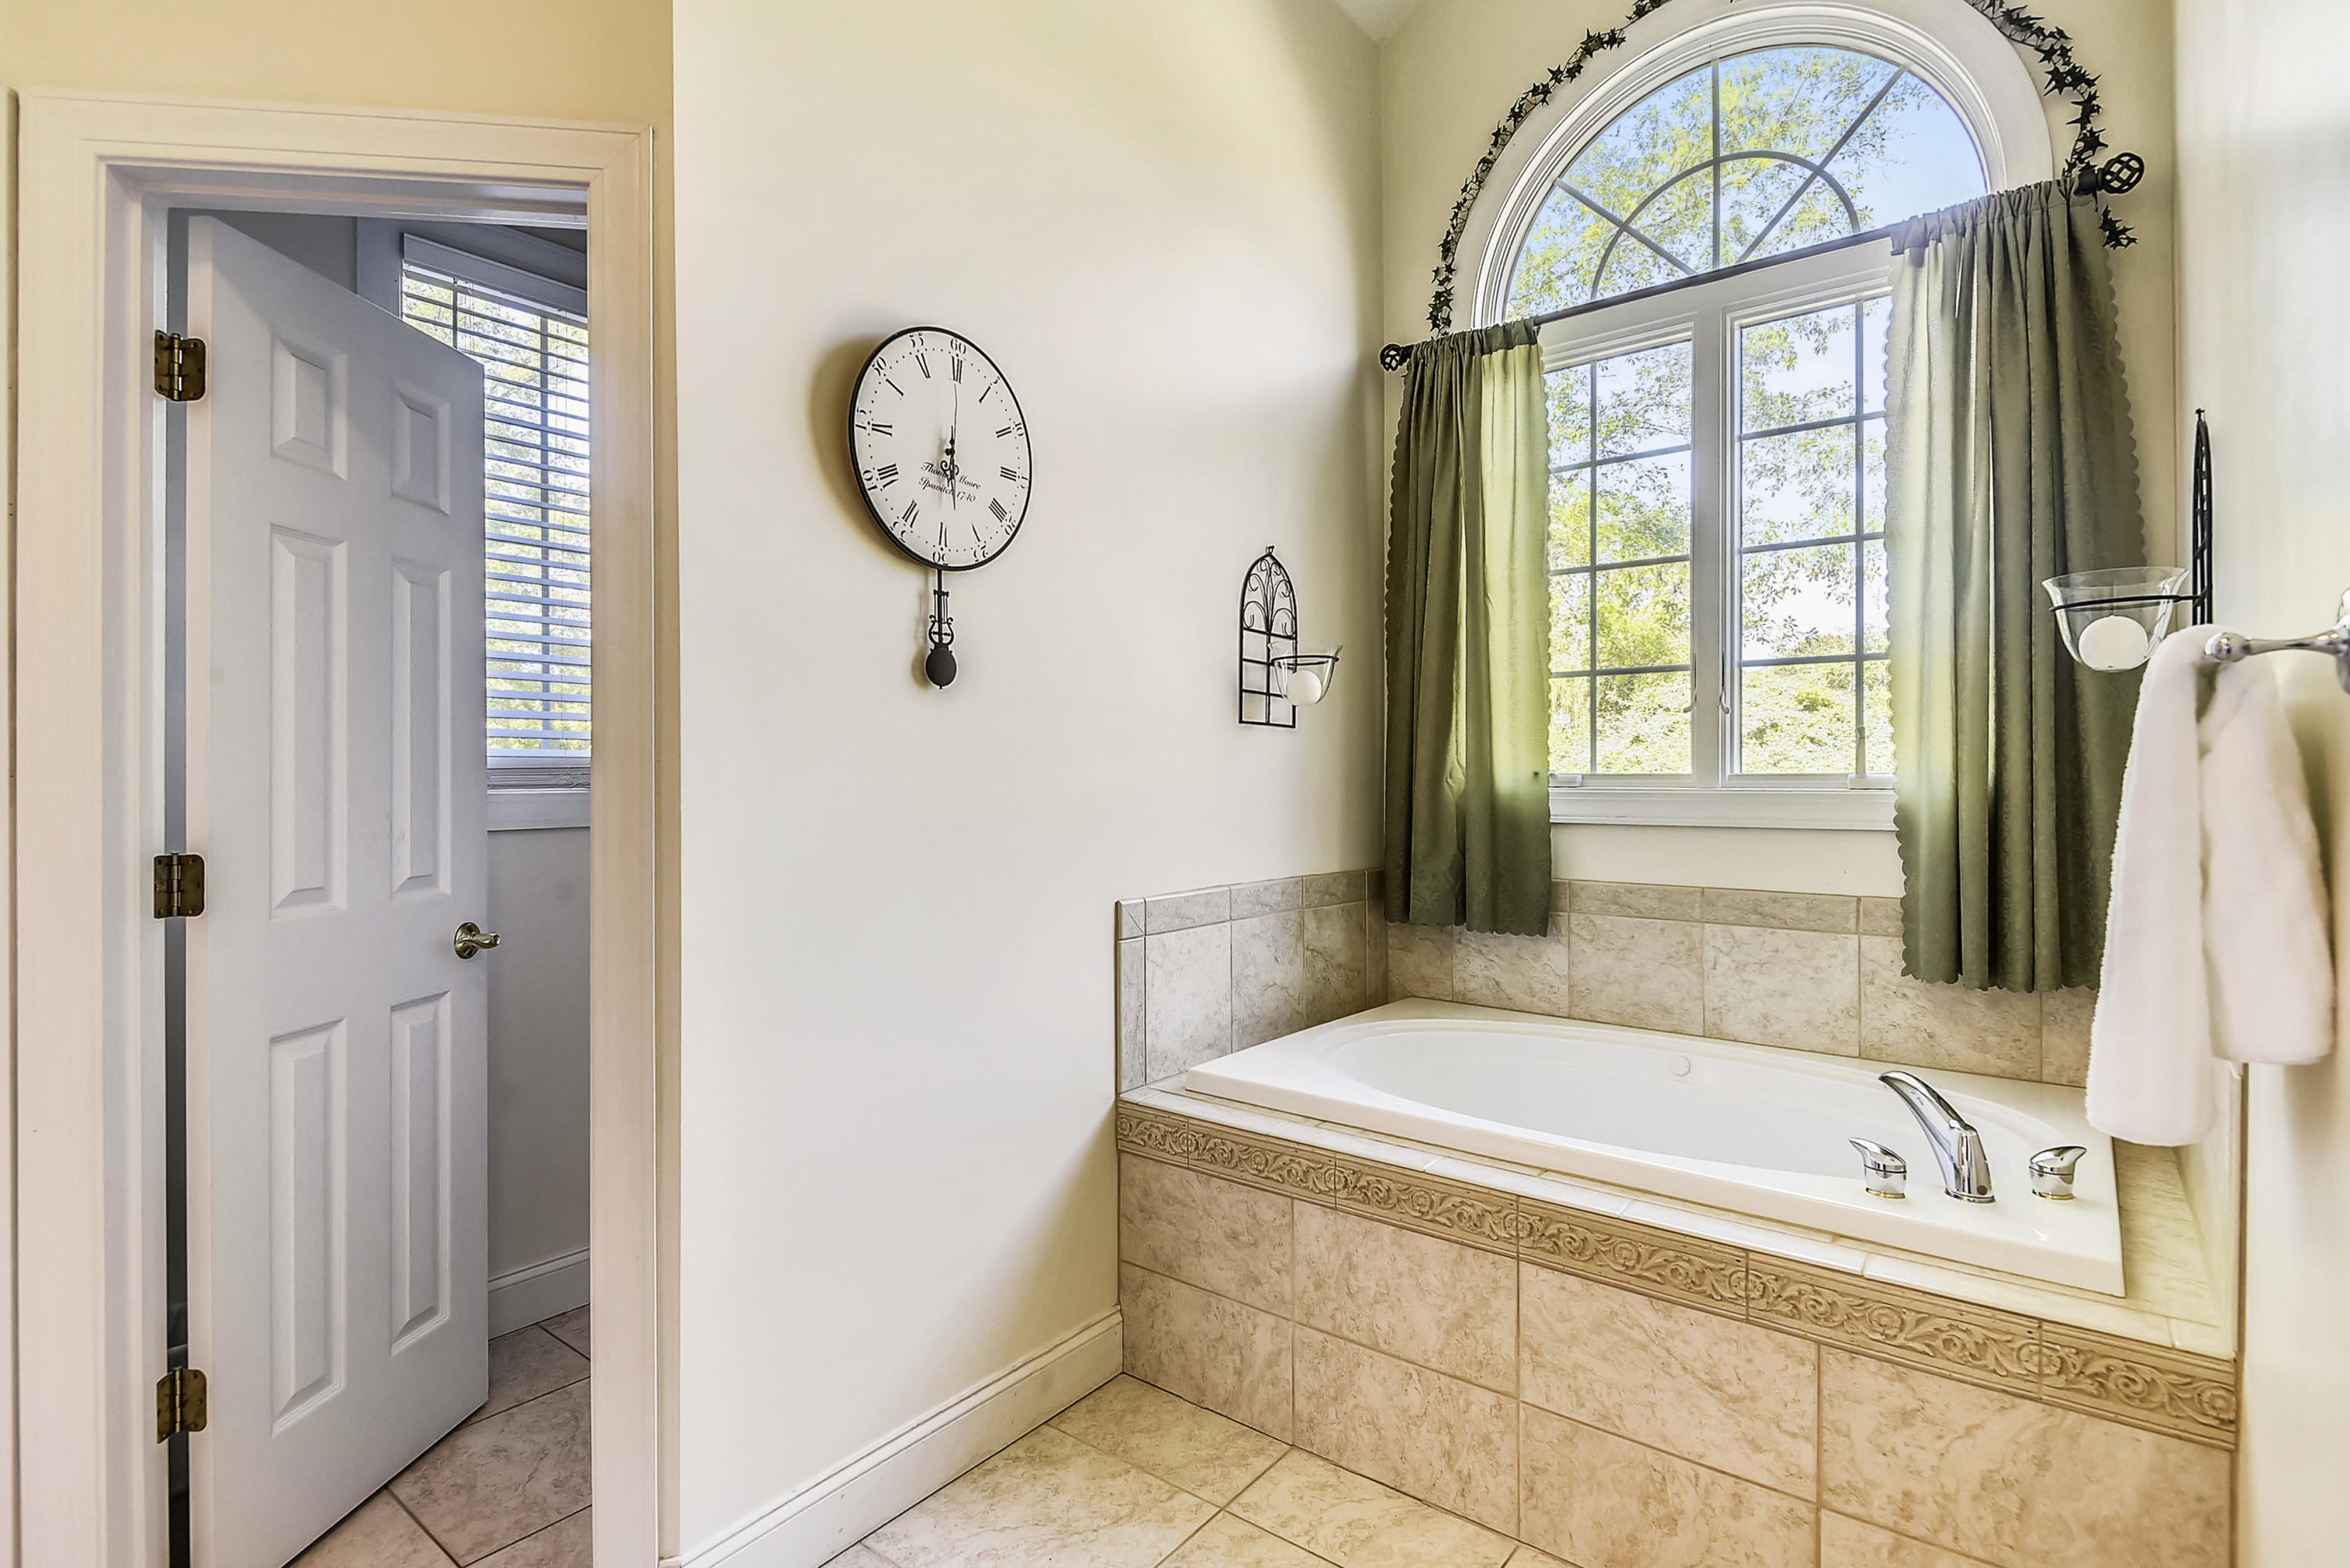 Coosaw Creek Country Club Homes For Sale - 8855 Fairway Woods, North Charleston, SC - 49